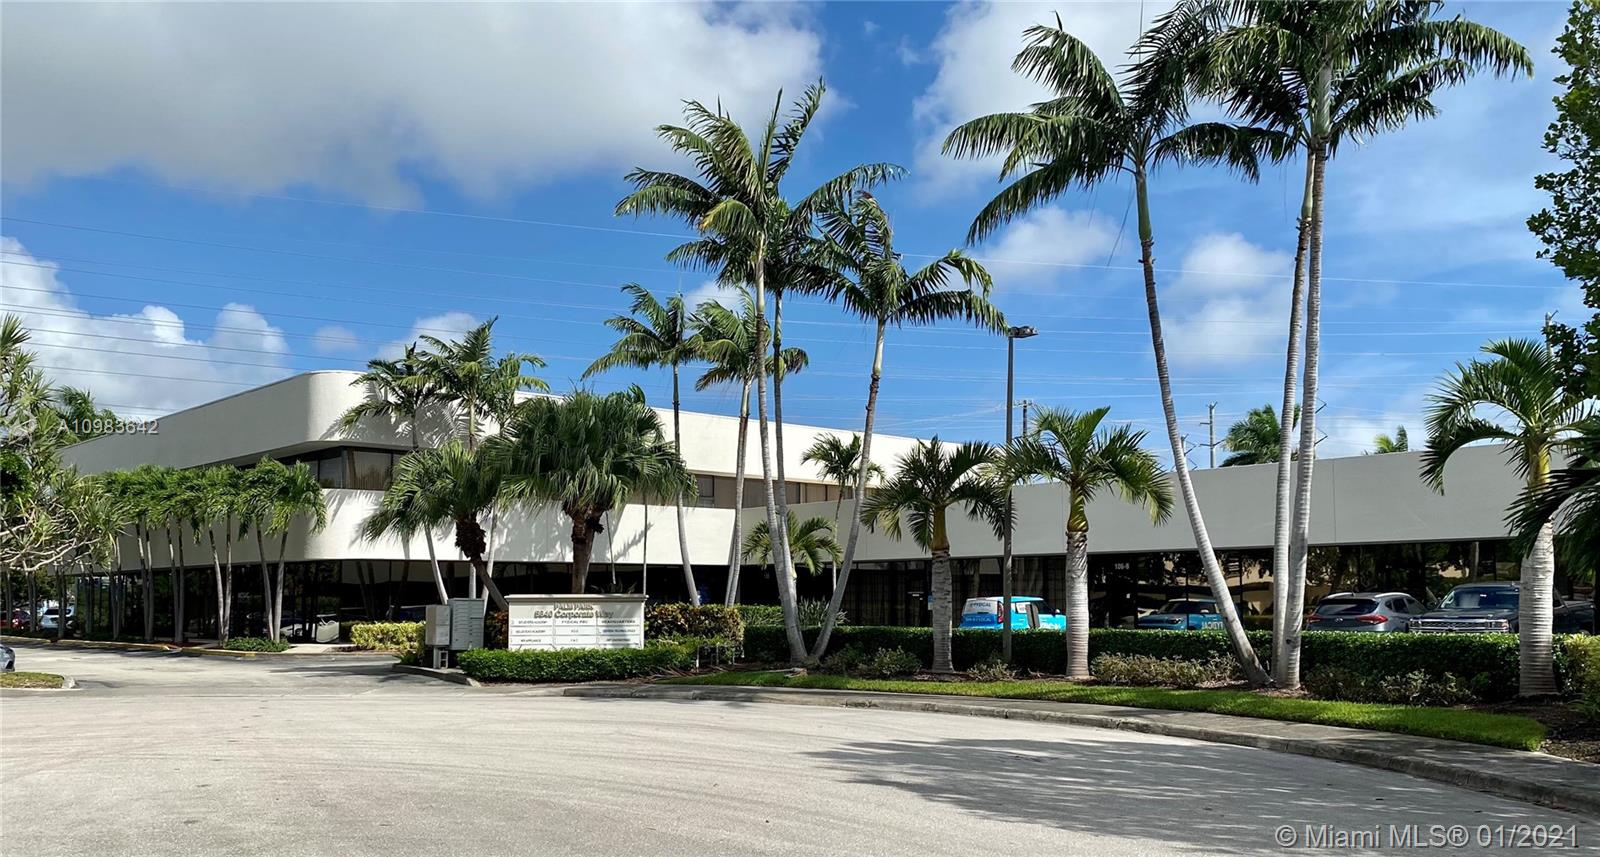 5840 Corporate Way # 106B, West Palm Beach, Florida 33407, ,Commercial Sale,For Sale,5840 Corporate Way # 106B,A10983642